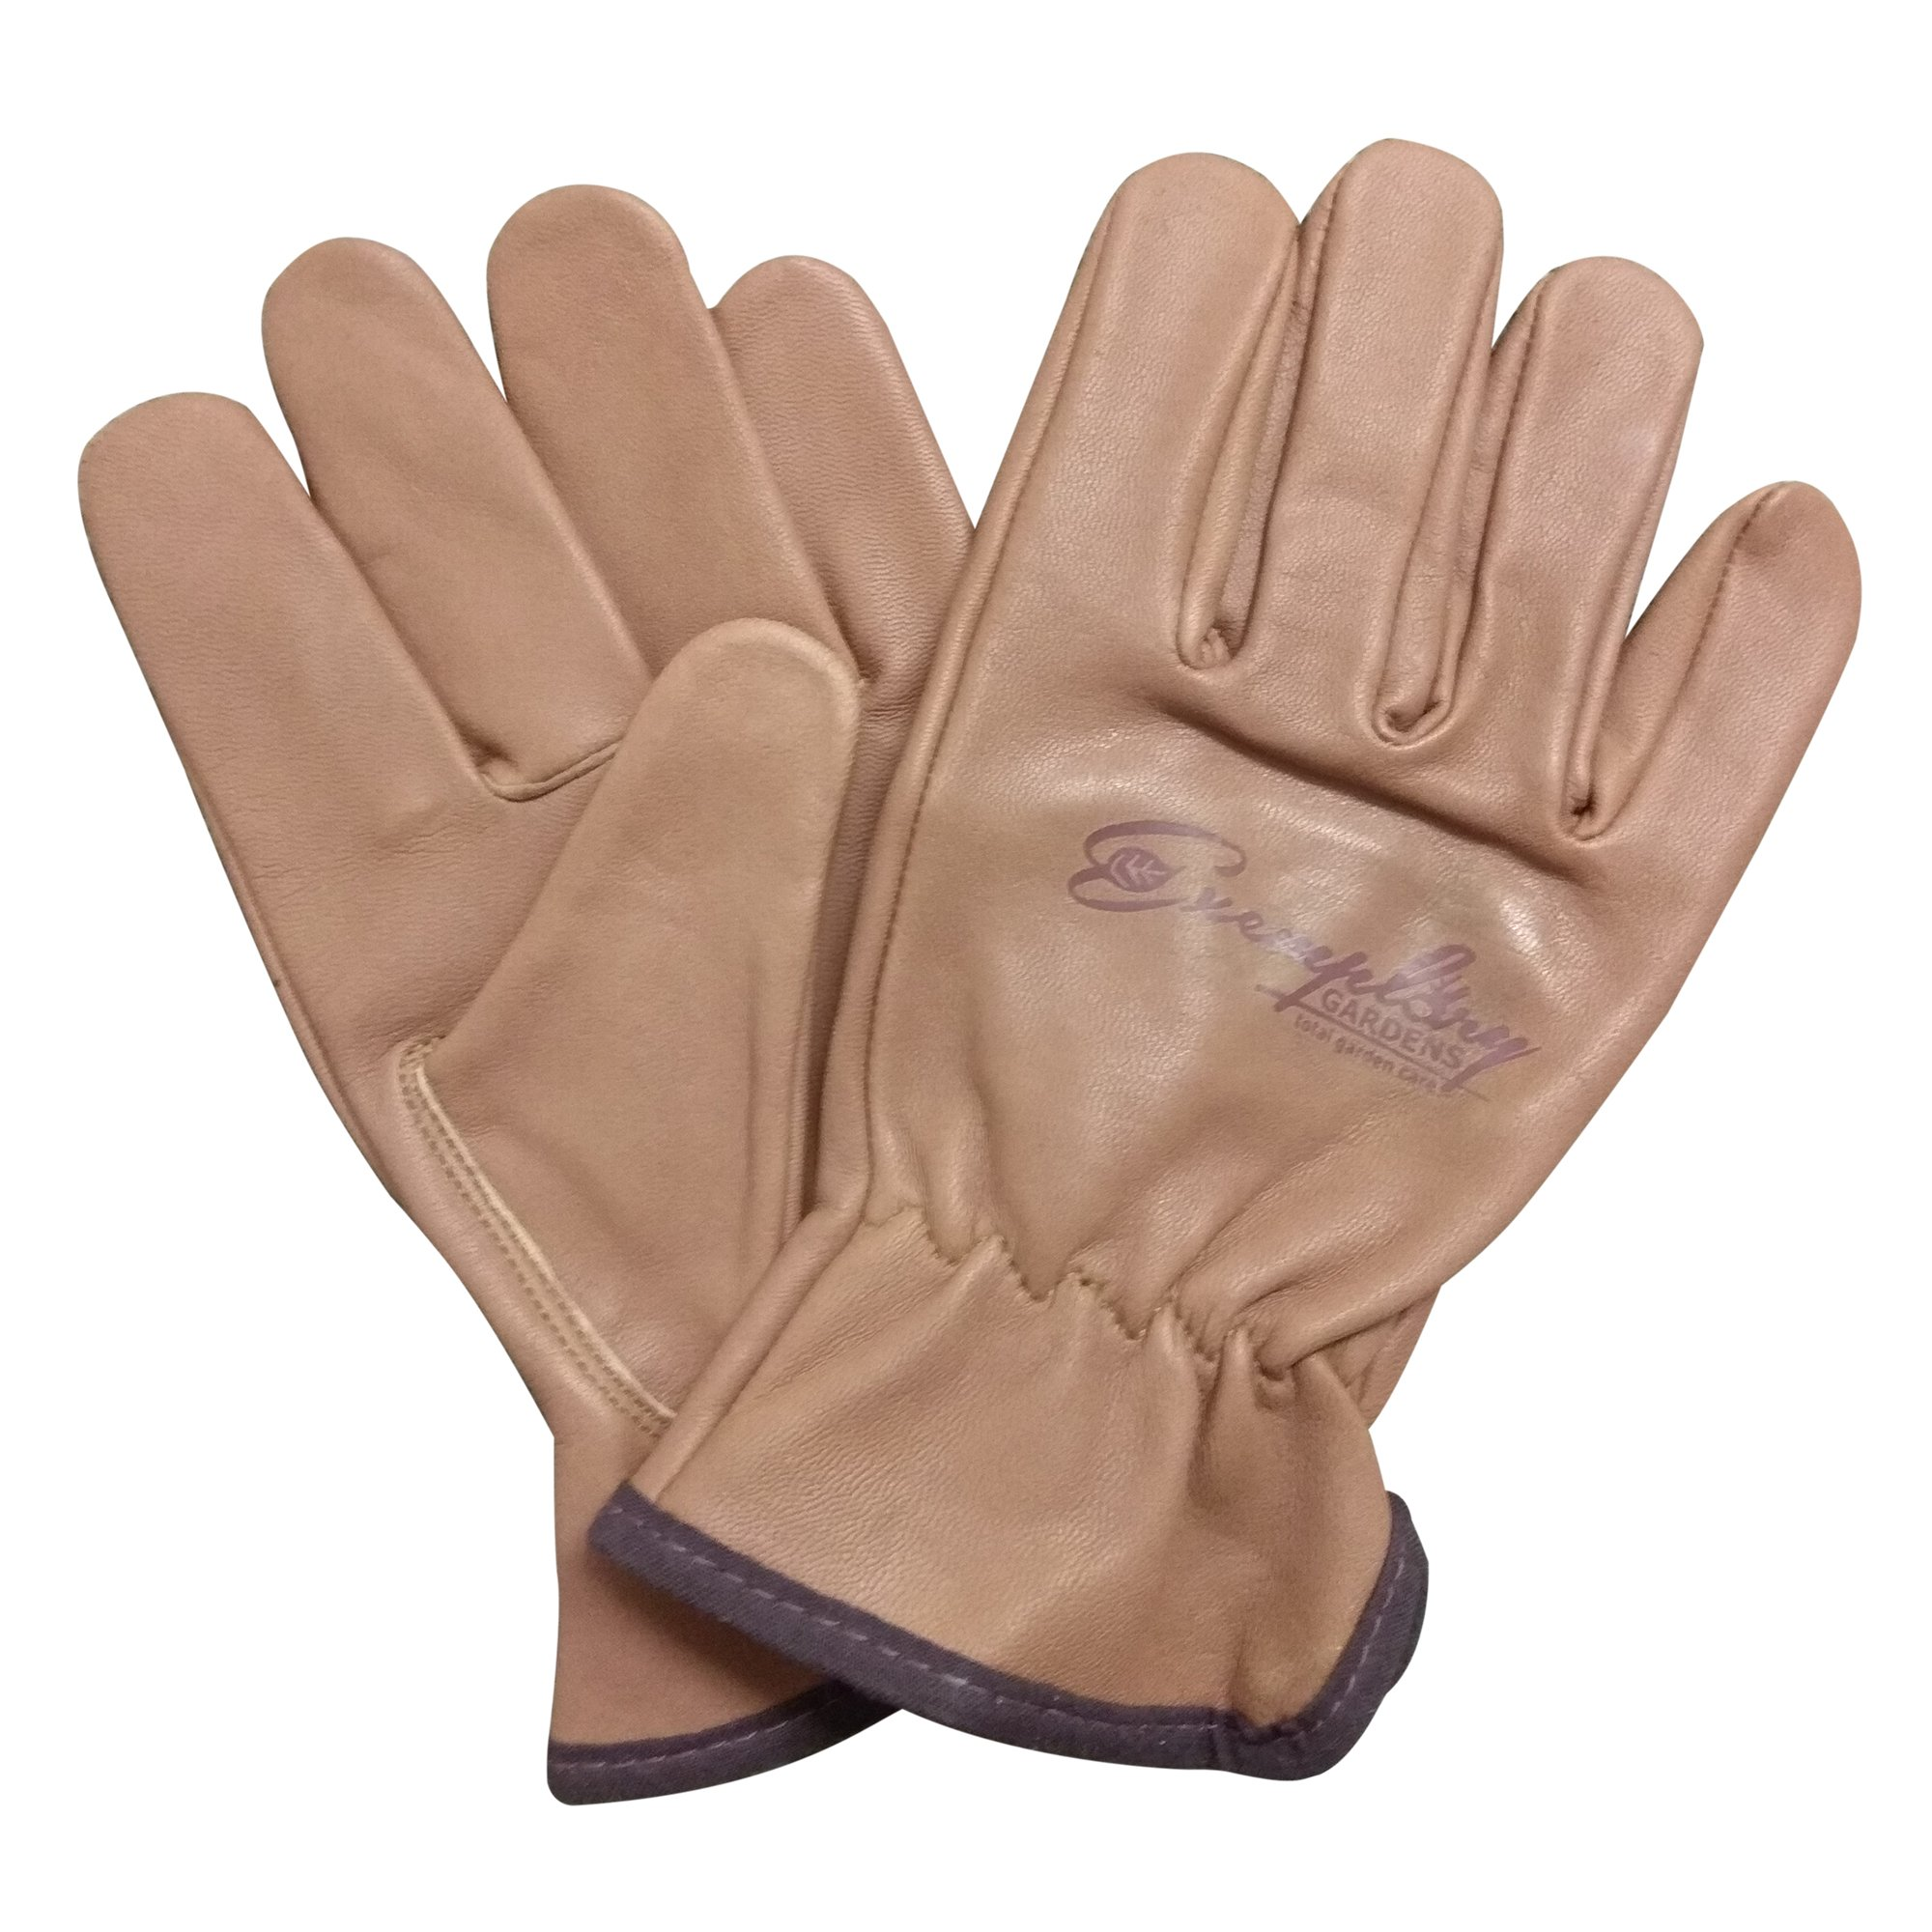 Heavy Duty Goatskin Leather Work Gloves for Men and Women. General Purpose Utility, Driver, Rigger, Safety, and Gardening Gloves (Extra Small, Brown)